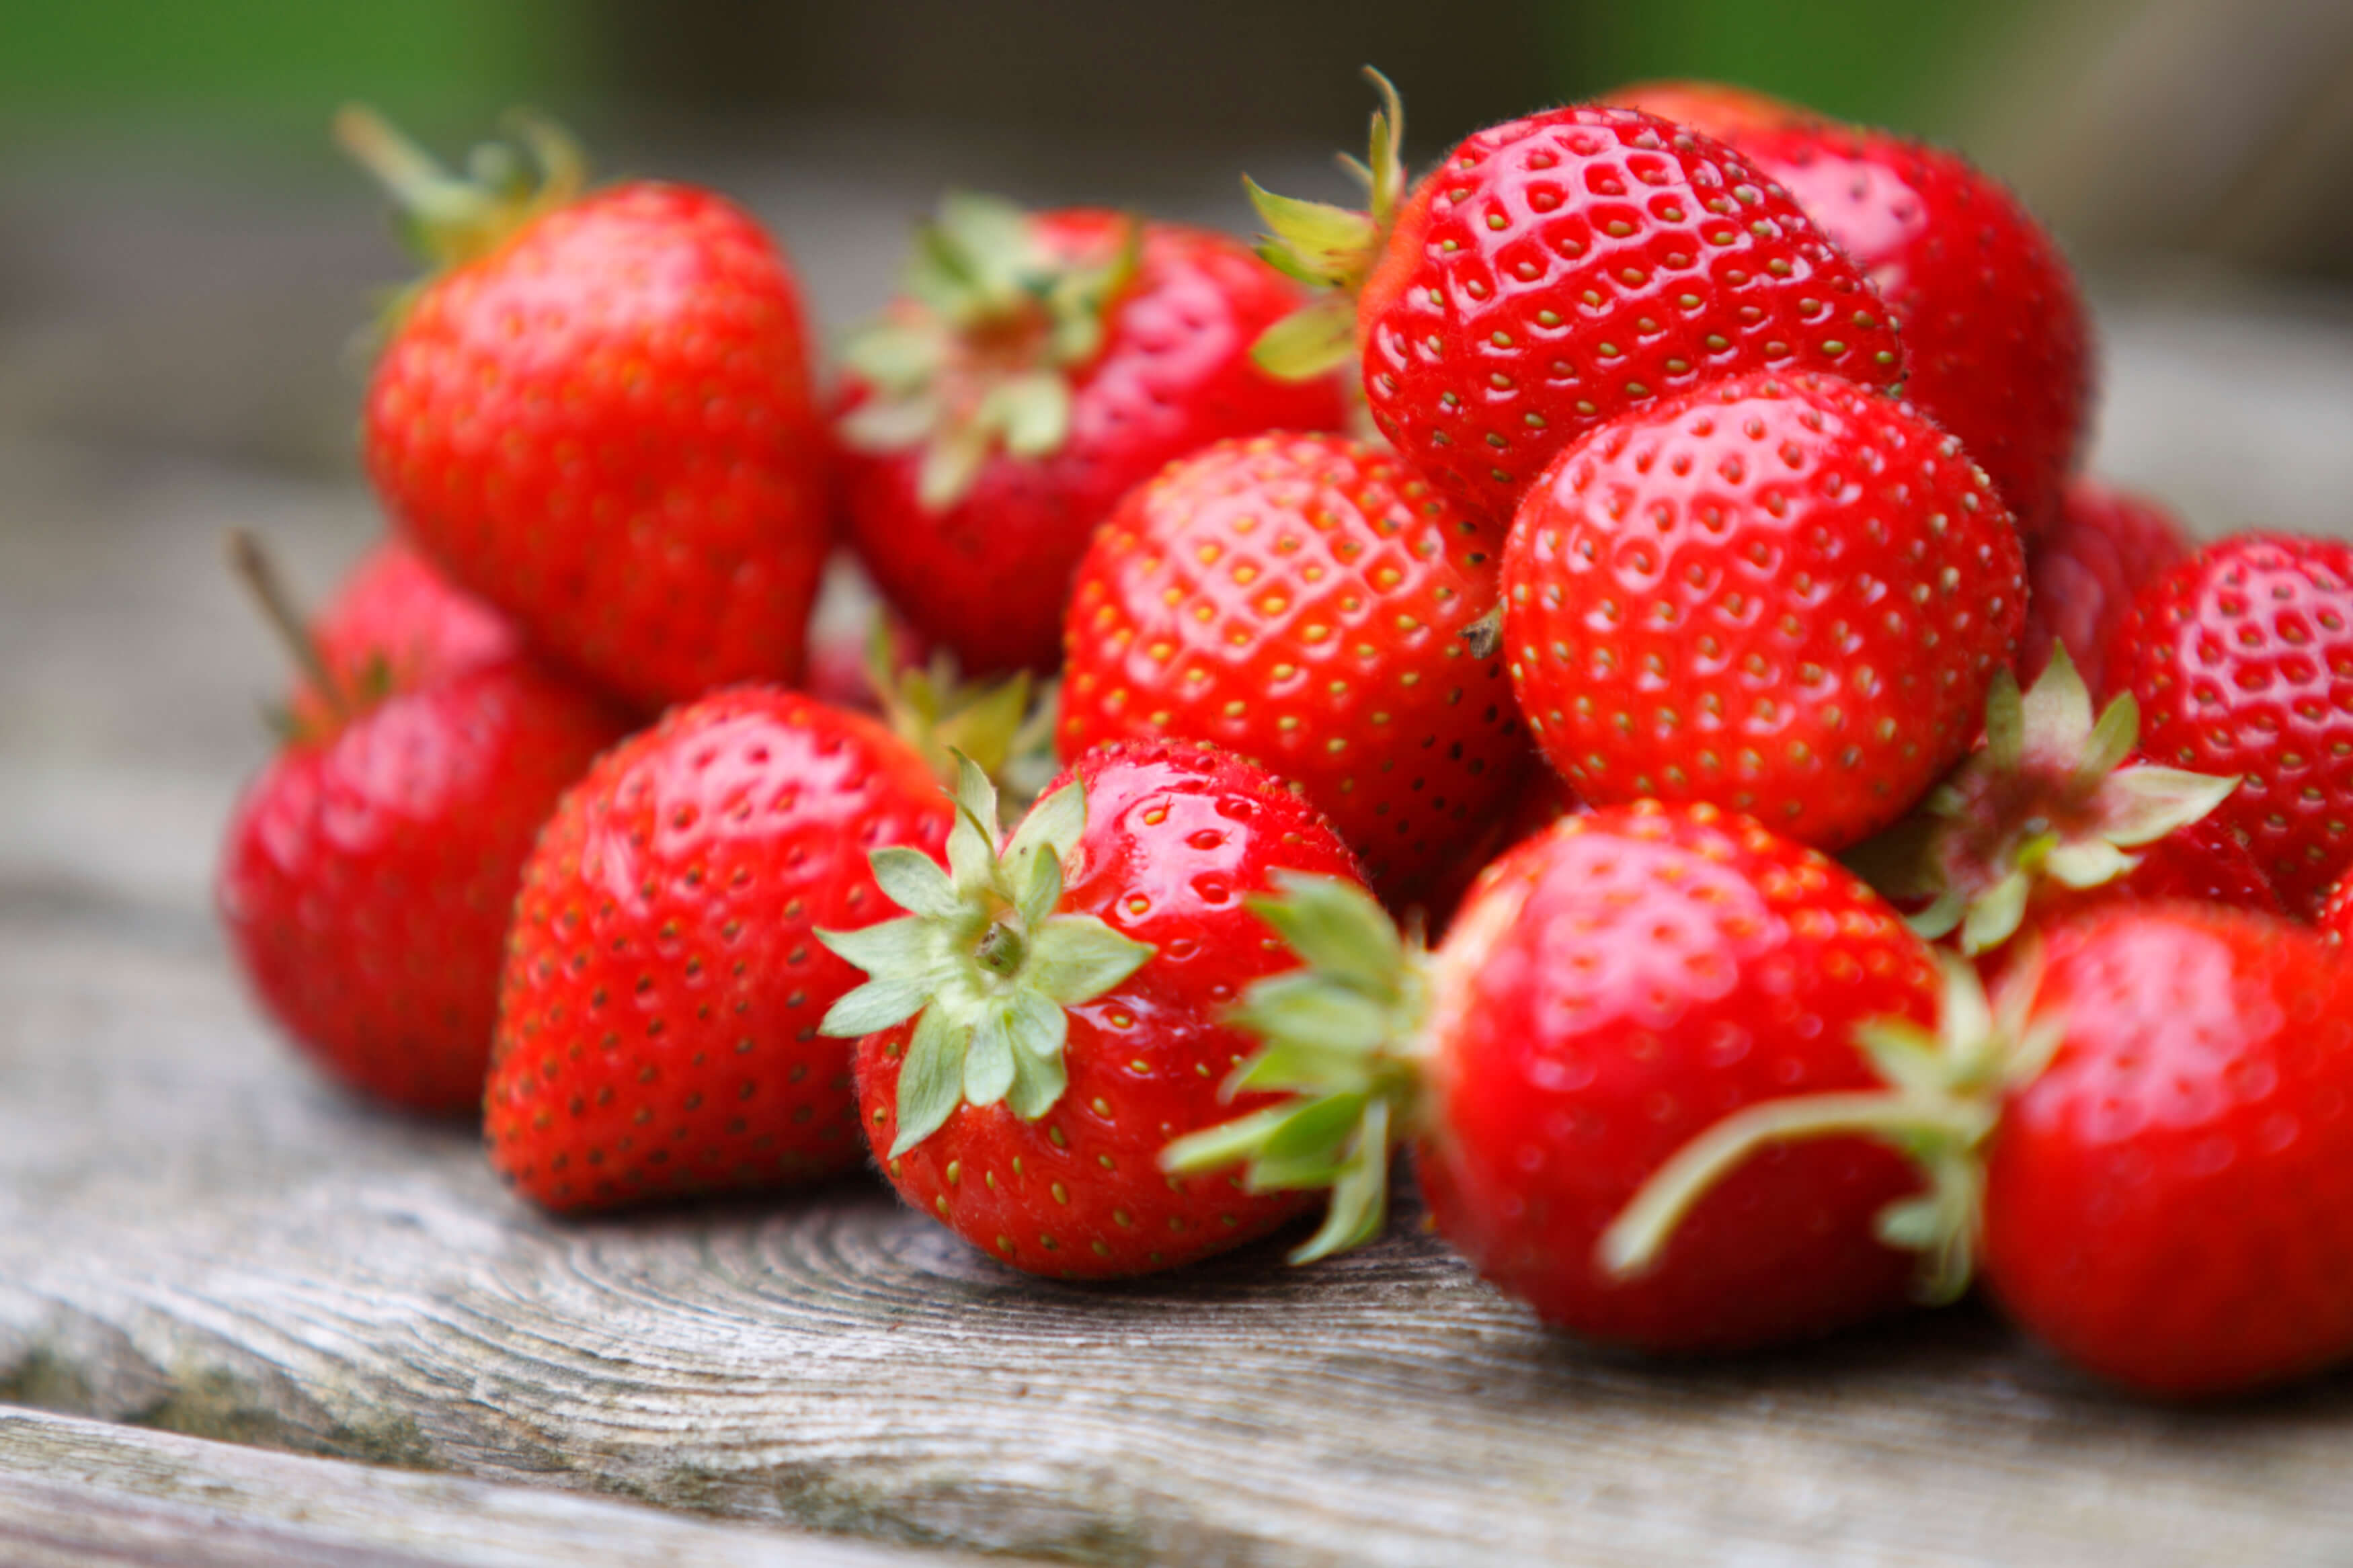 Spring vegetables and fruits: strawberries